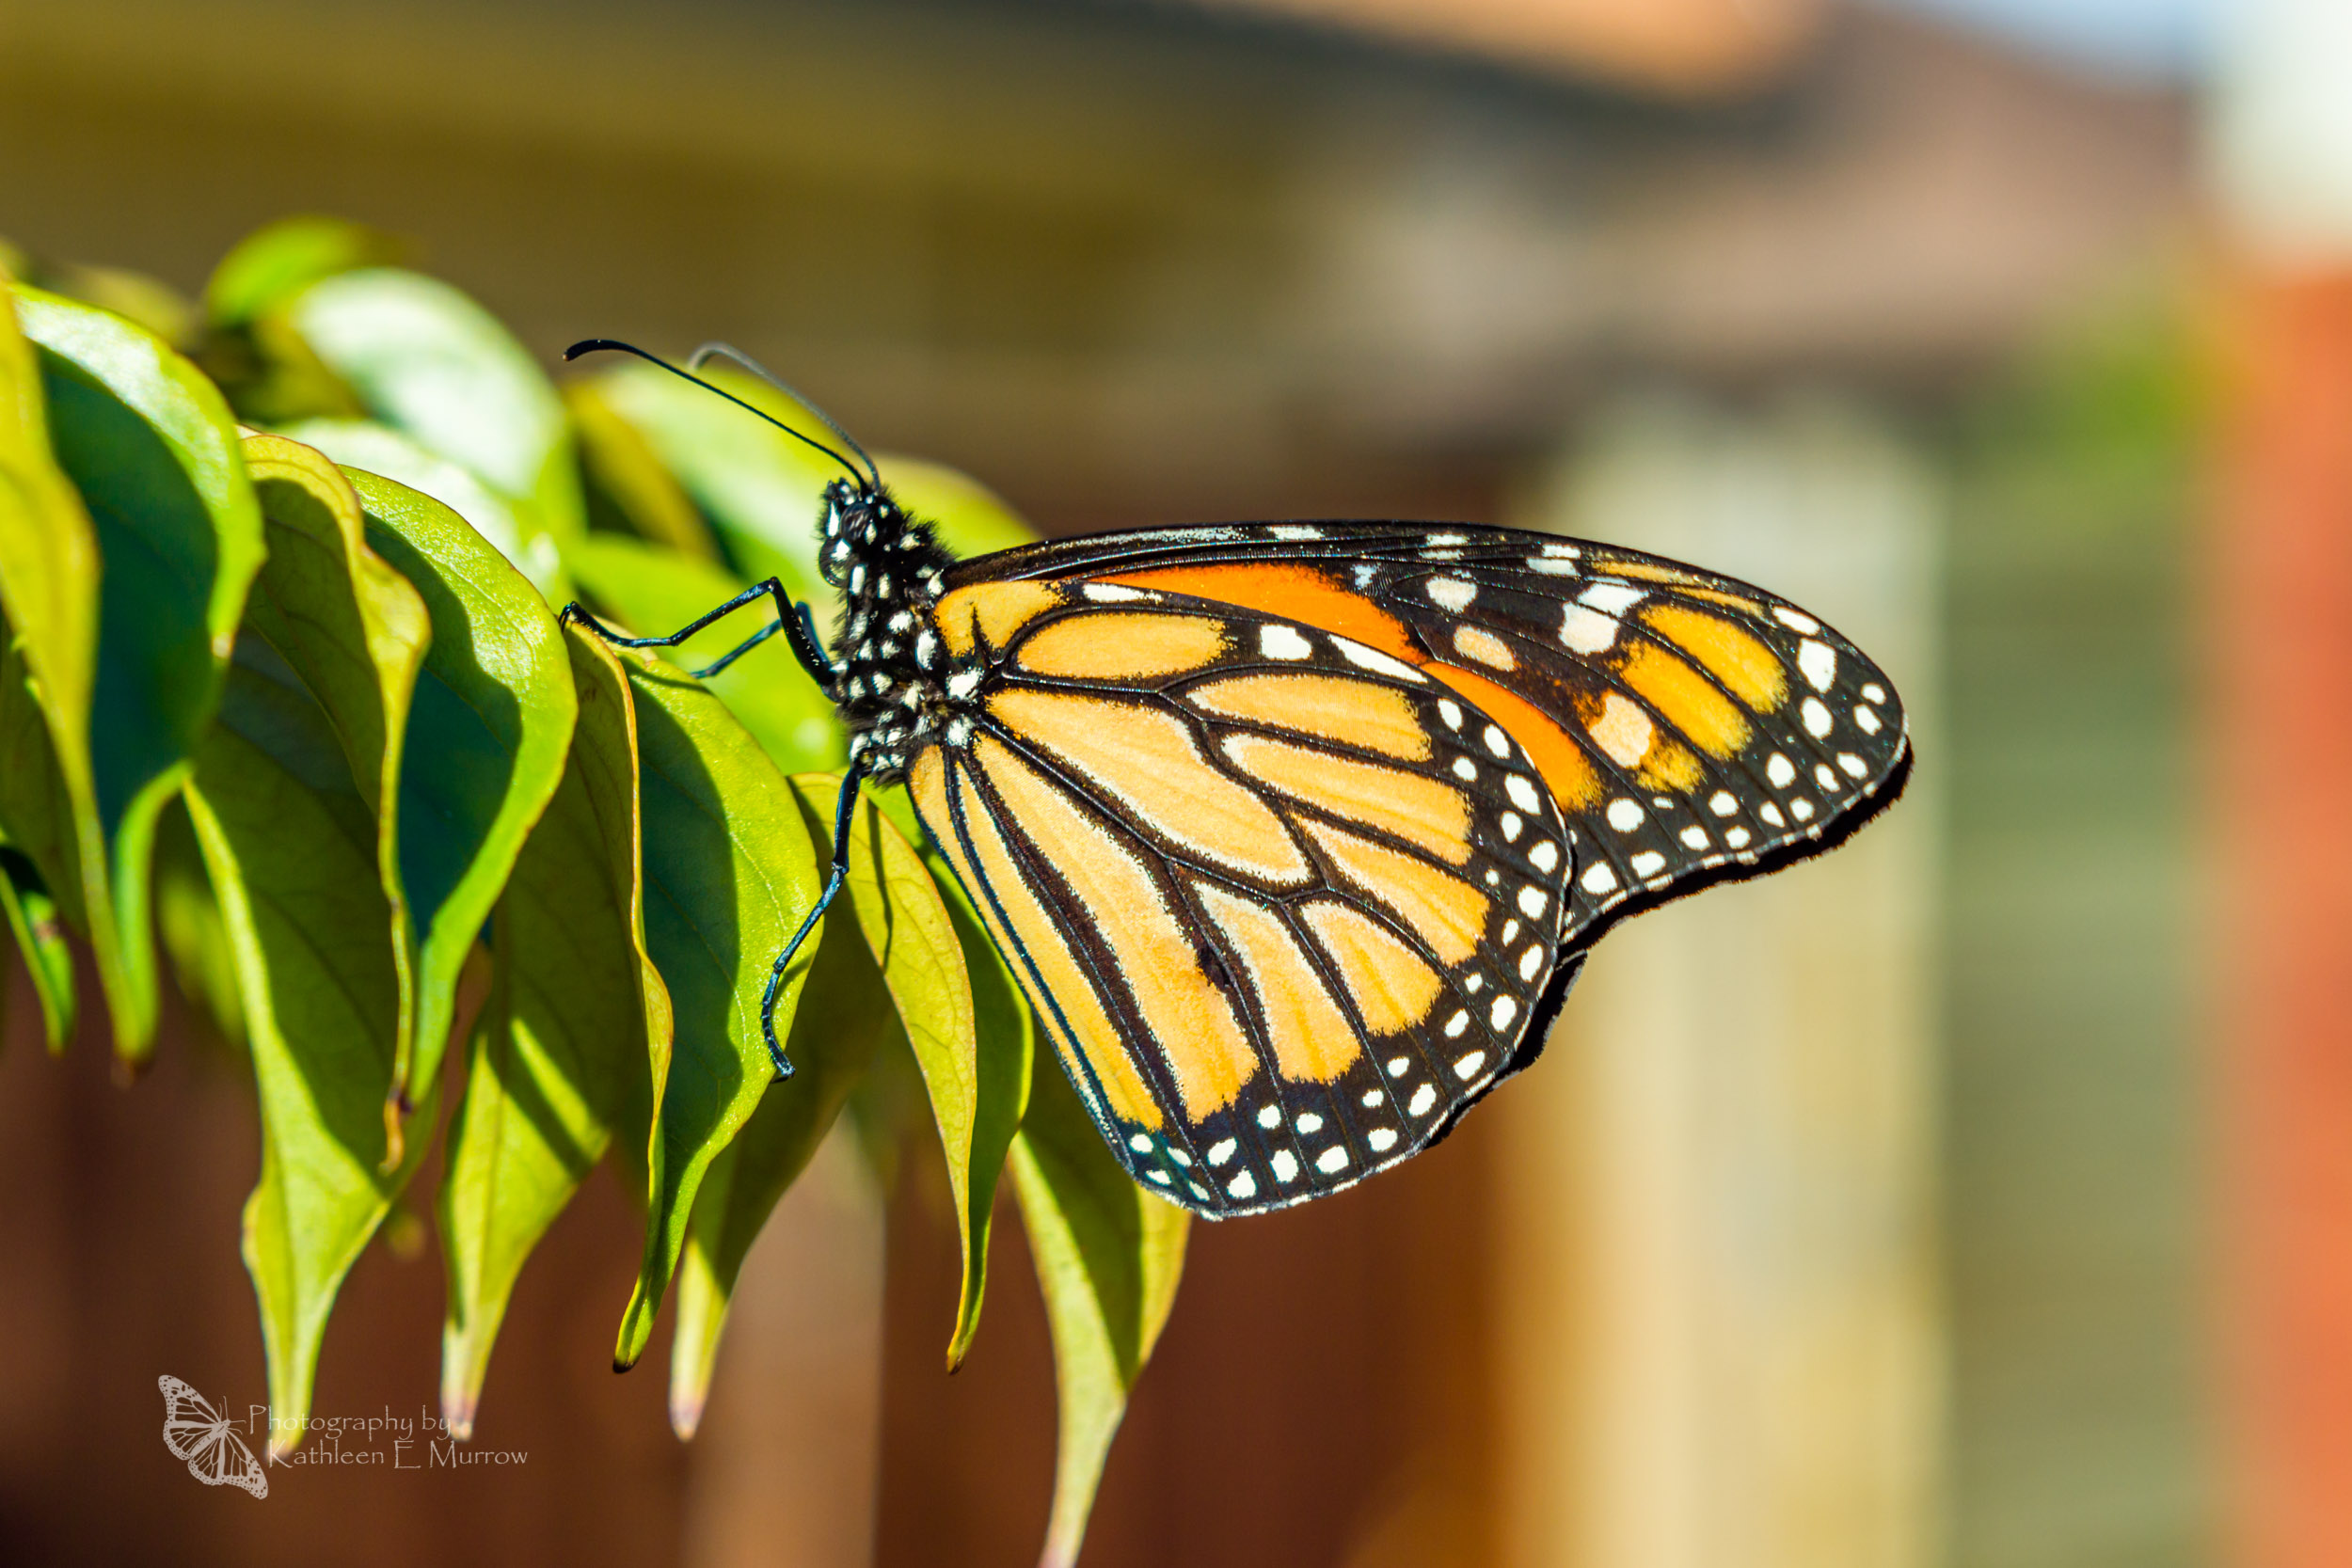 A new (male) monarch butterfly rests in the sun, on the leaves of a tree